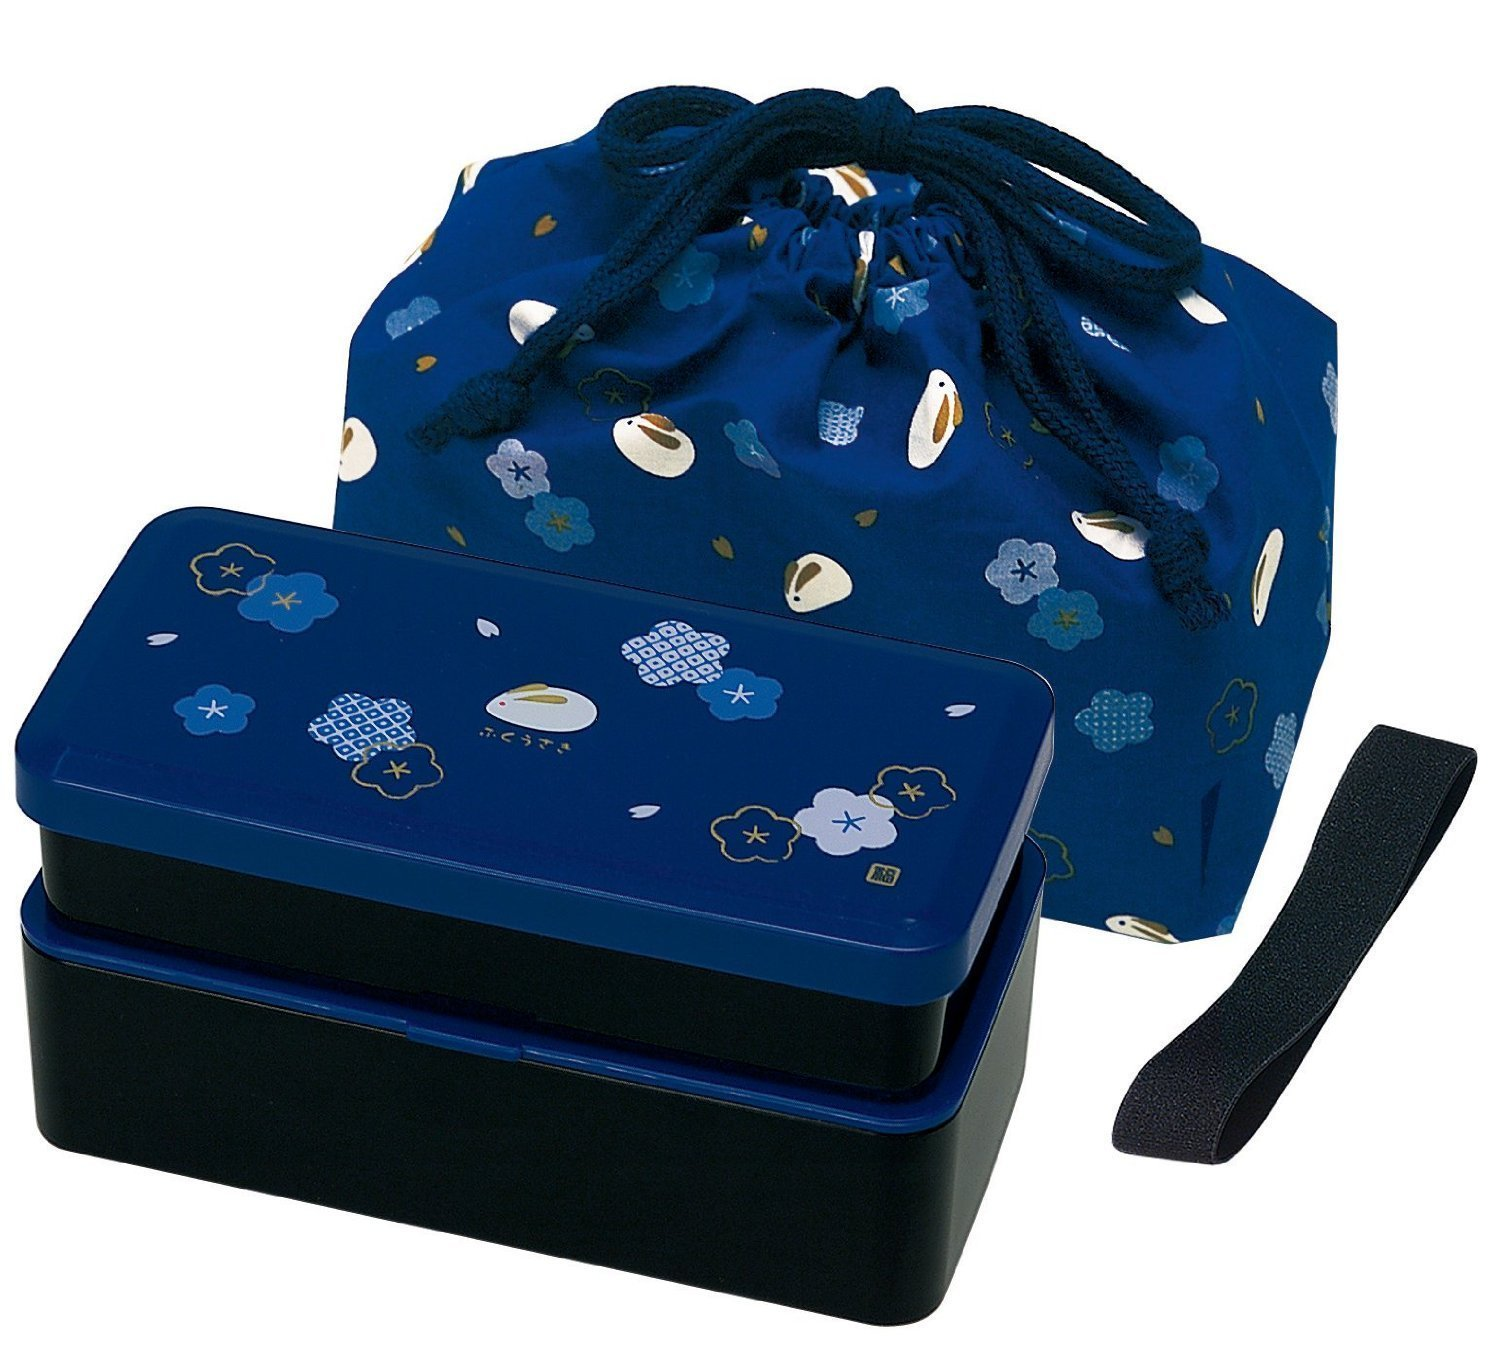 Japanese Traditional Rabbit Blossom Bento Box Set - Square 2 Tier Bento Box, Rice Ball Press, Bento Bag (Blue) Cute Z Cute 3998